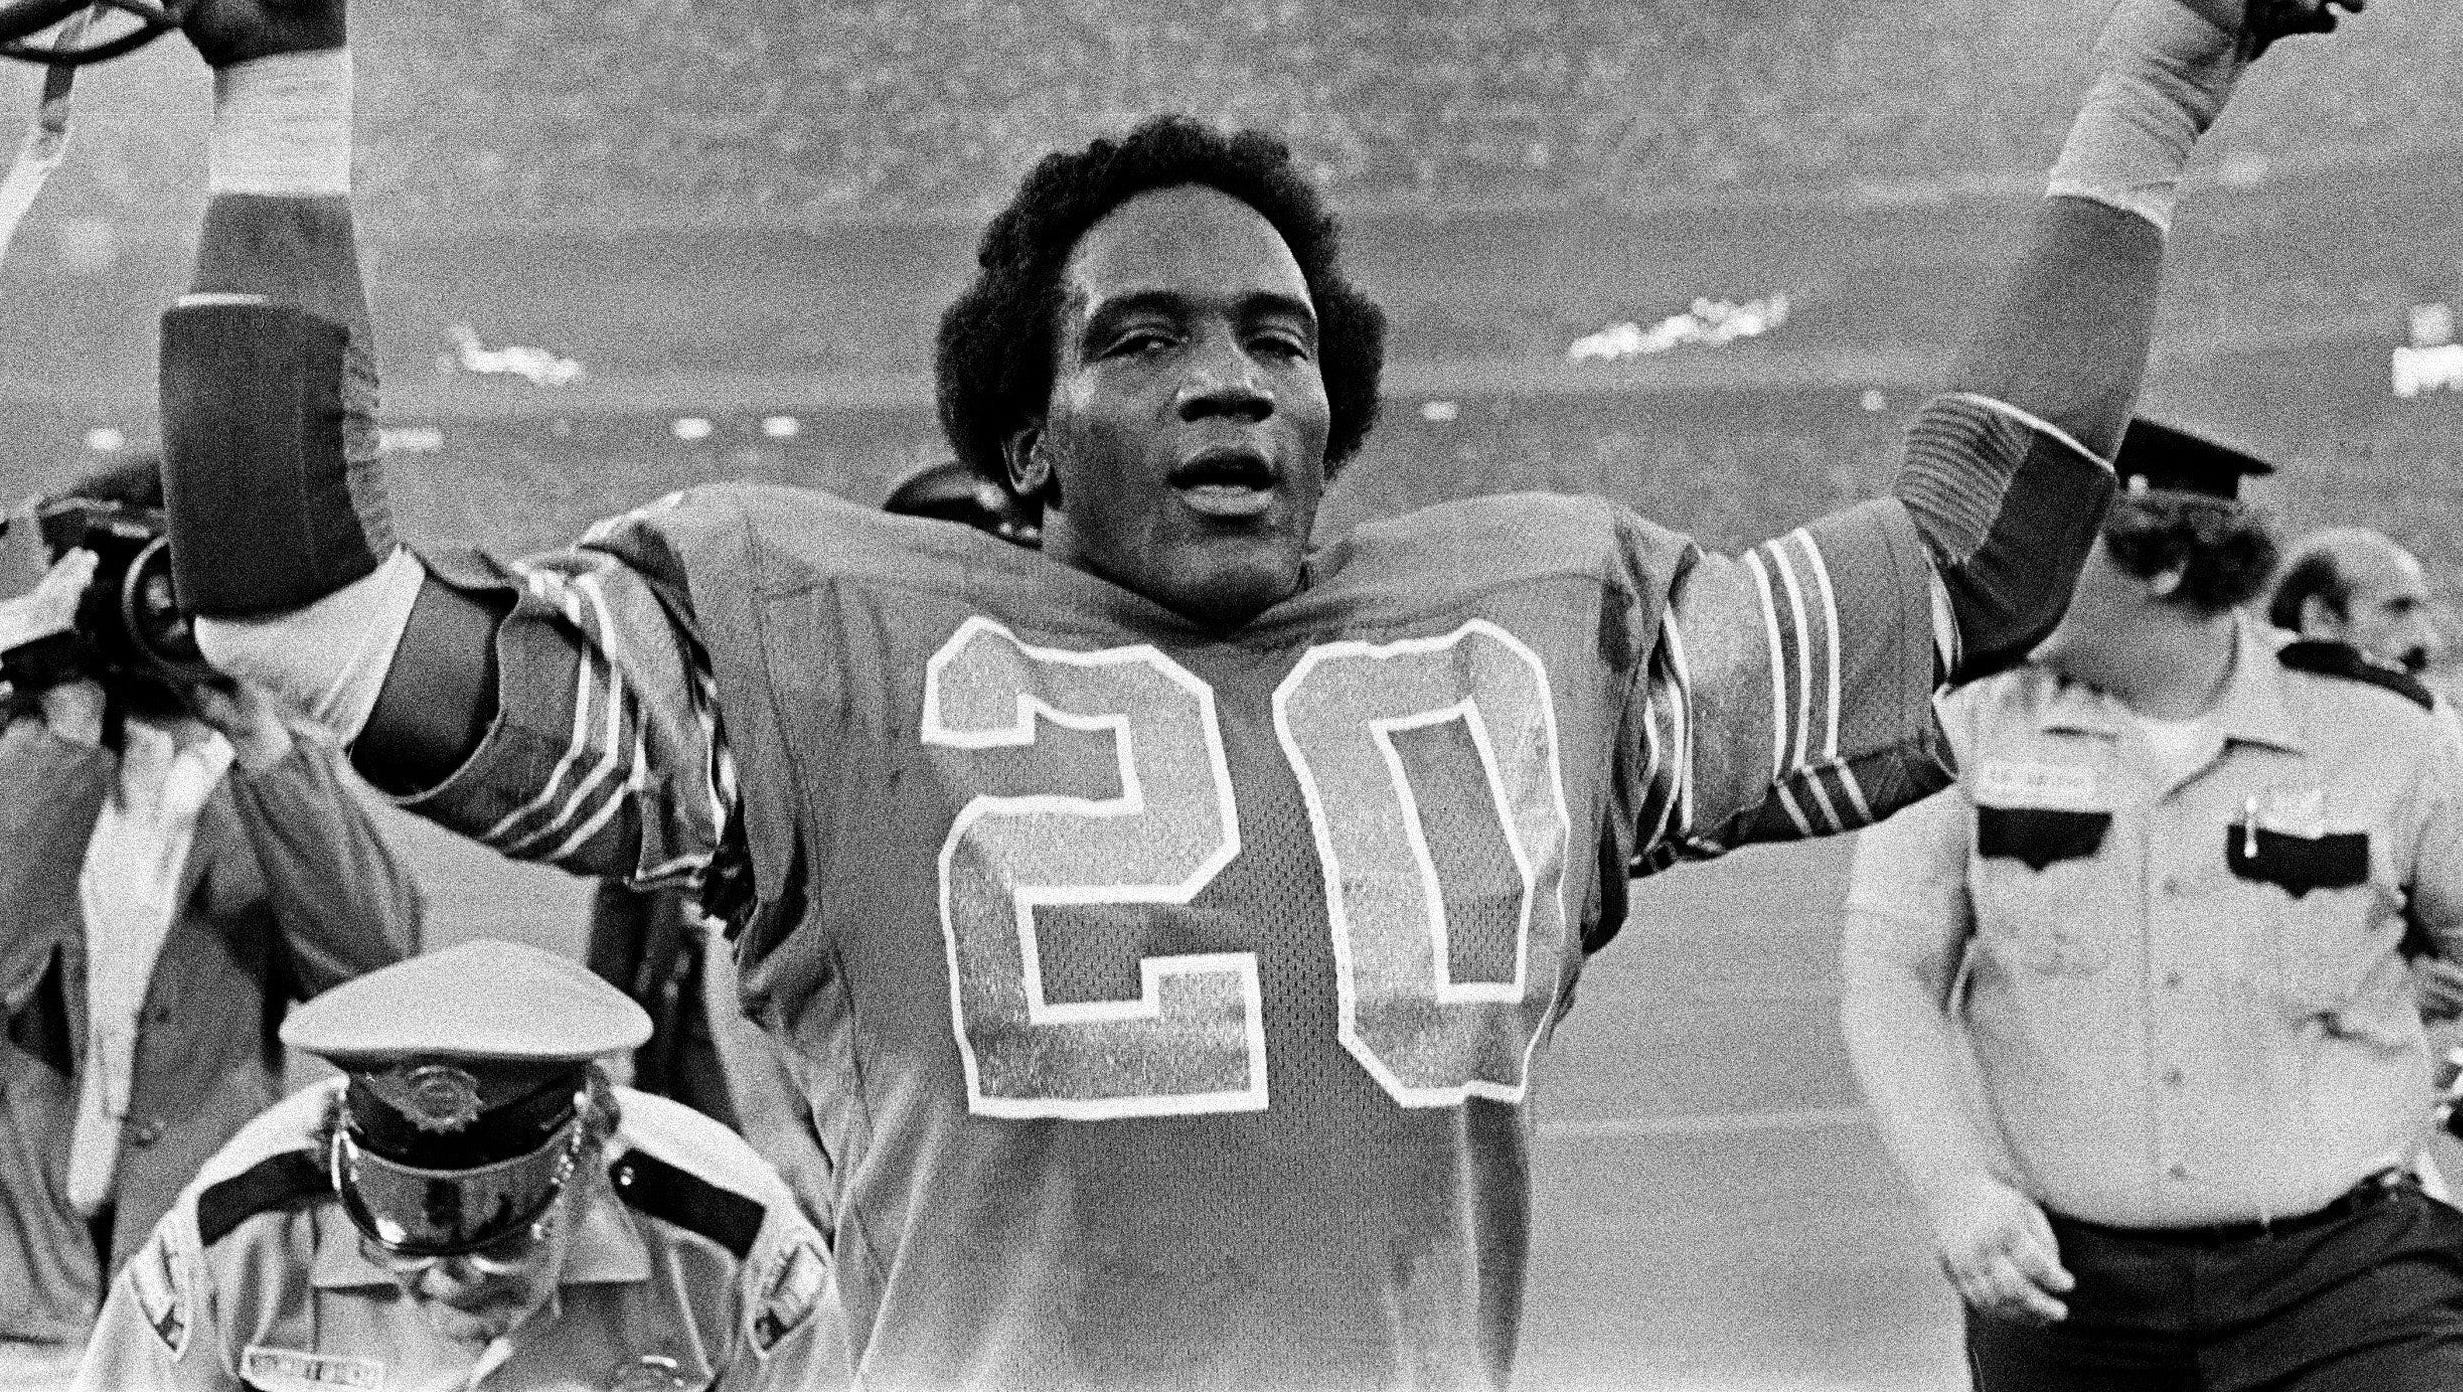 A look back: The knee injury that ended ex Lions RB Billy Sims' career